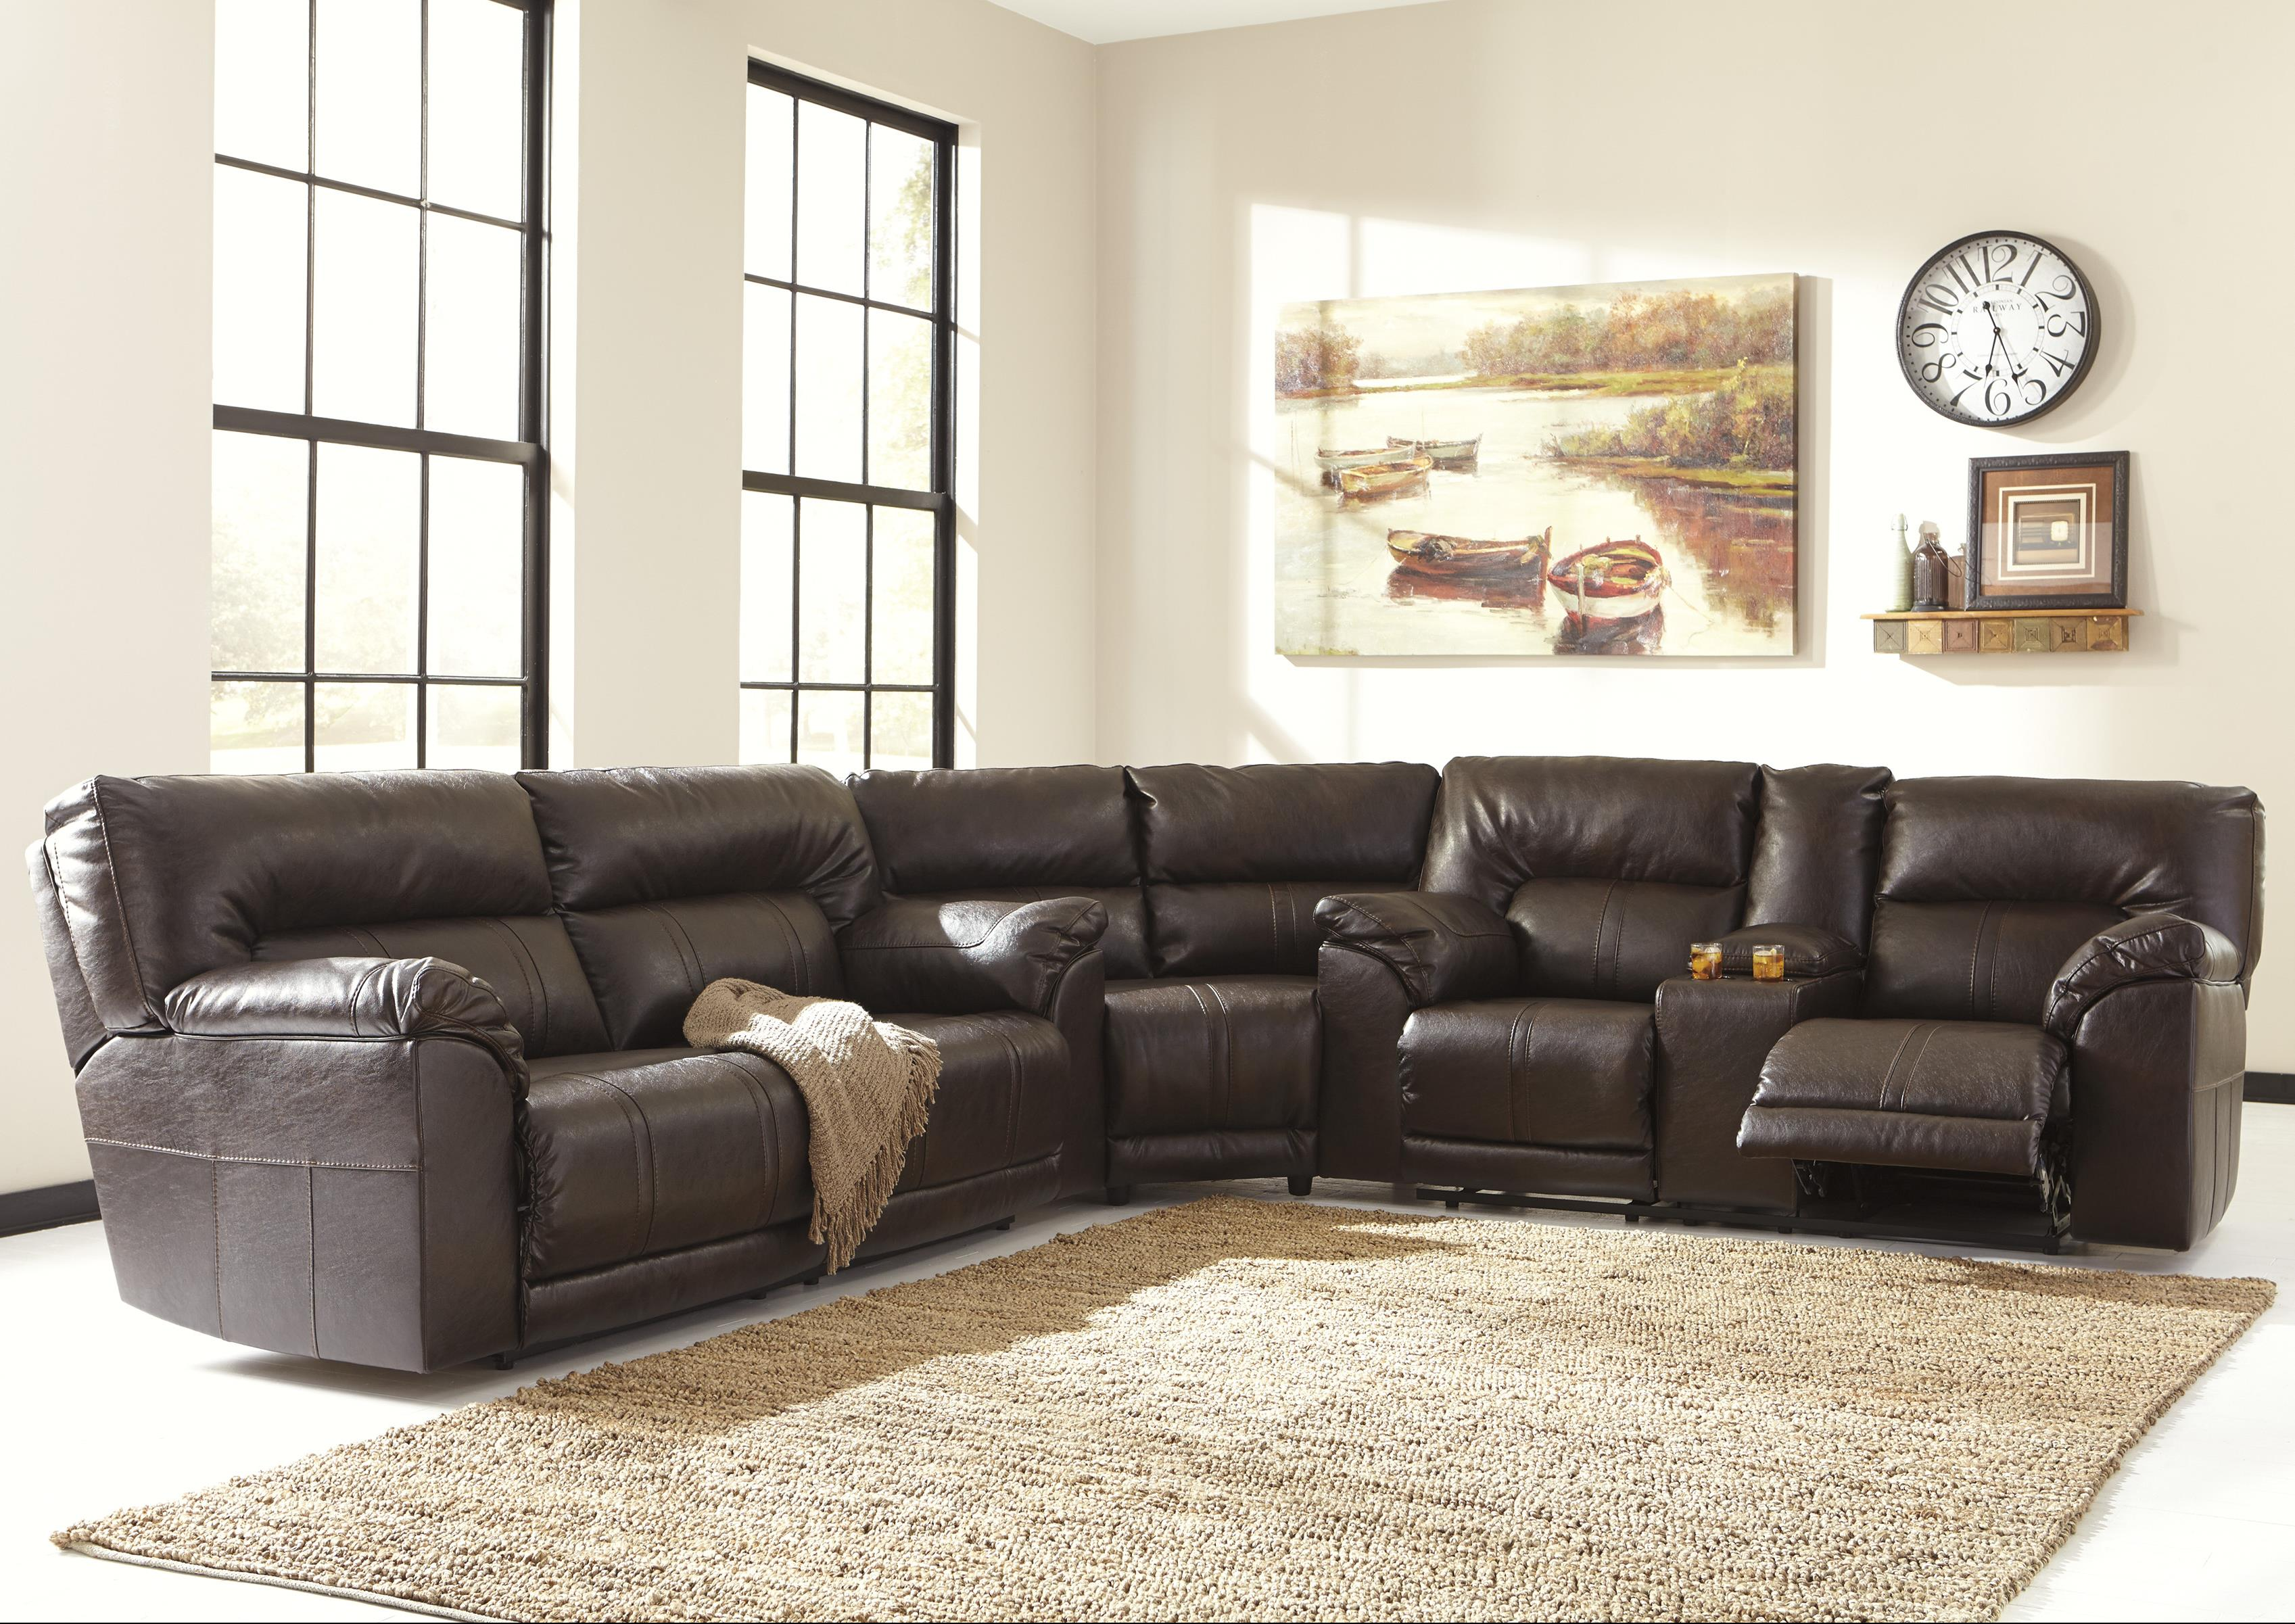 Benchcraft Barrettsville DuraBlend® 3-Piece Reclining Sectional - Item Number 4730181+77 & Benchcraft Barrettsville DuraBlend® 3-Piece Reclining Sectional ... islam-shia.org